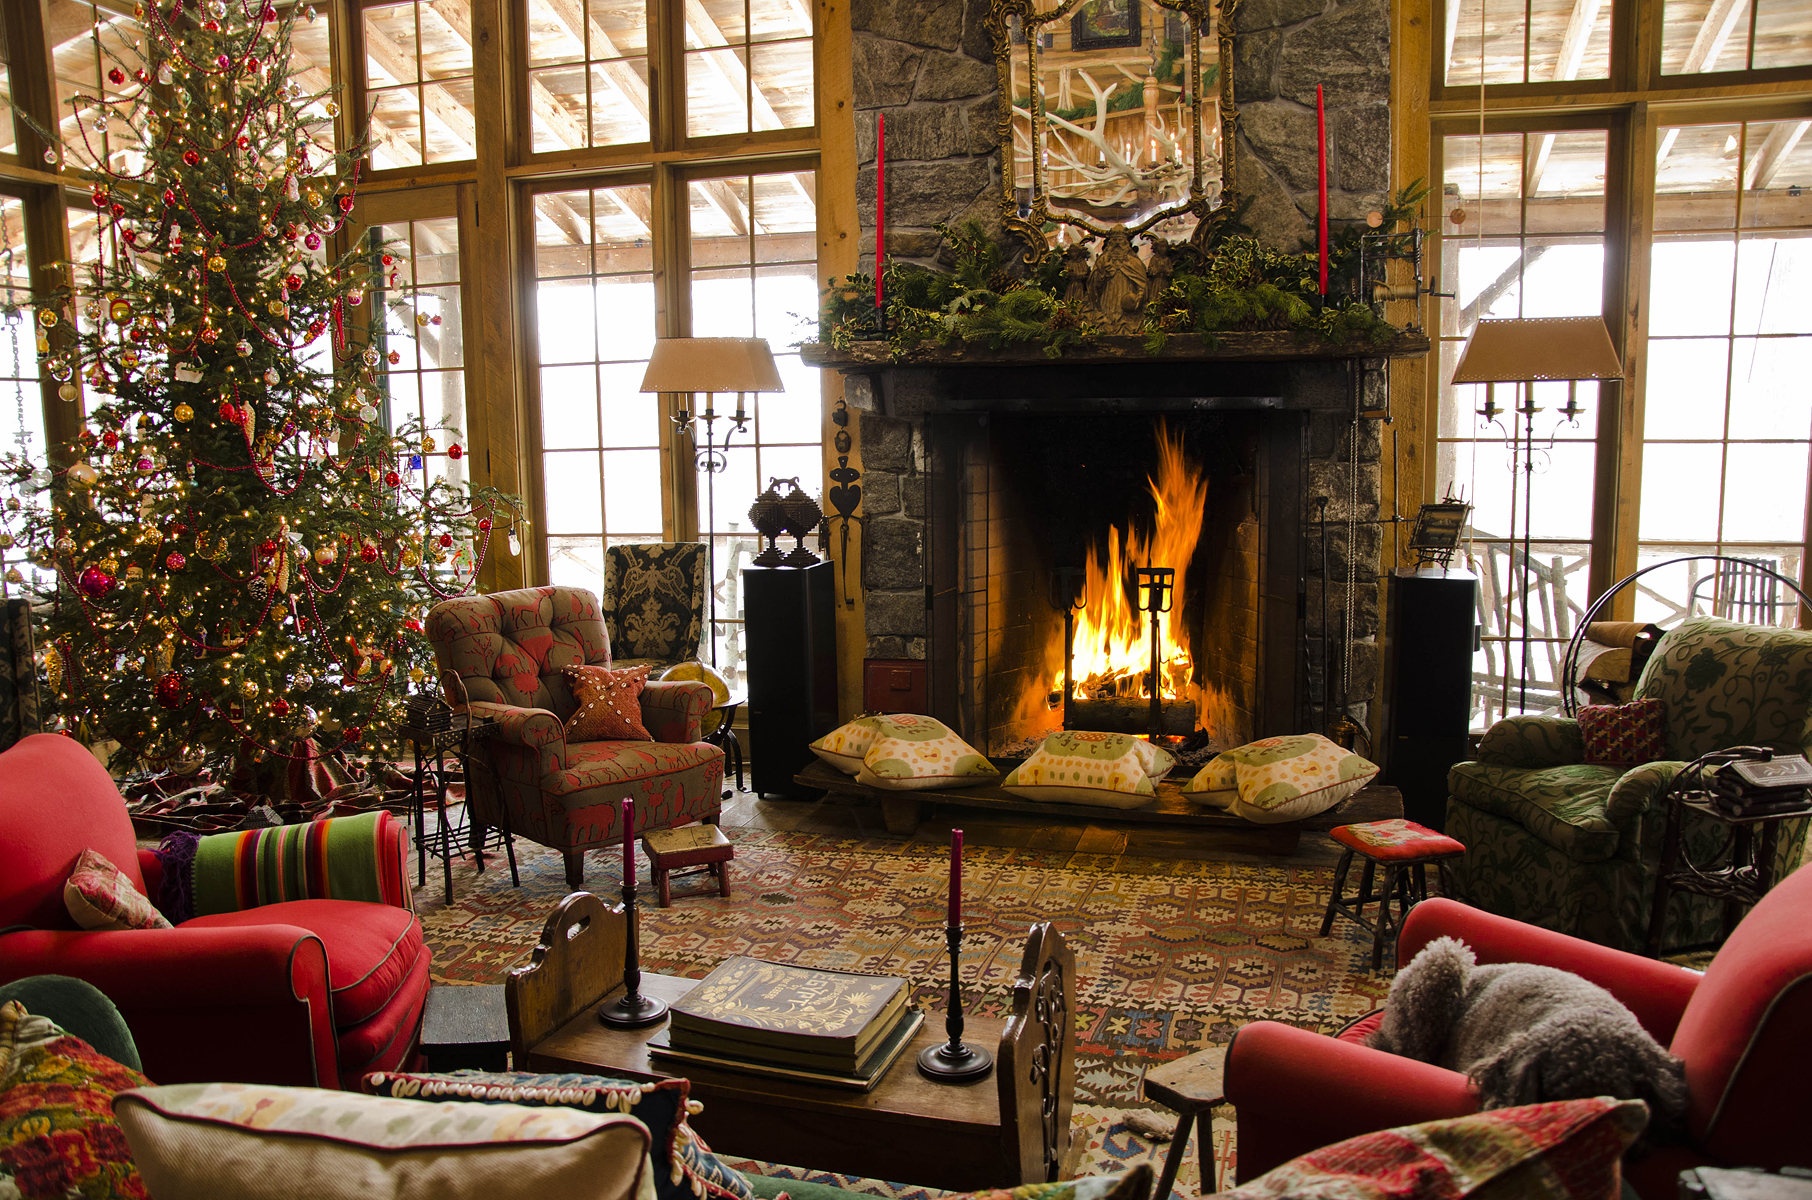 Christmas fireplace fire holiday festive decorations r wallpaper 1812x1200